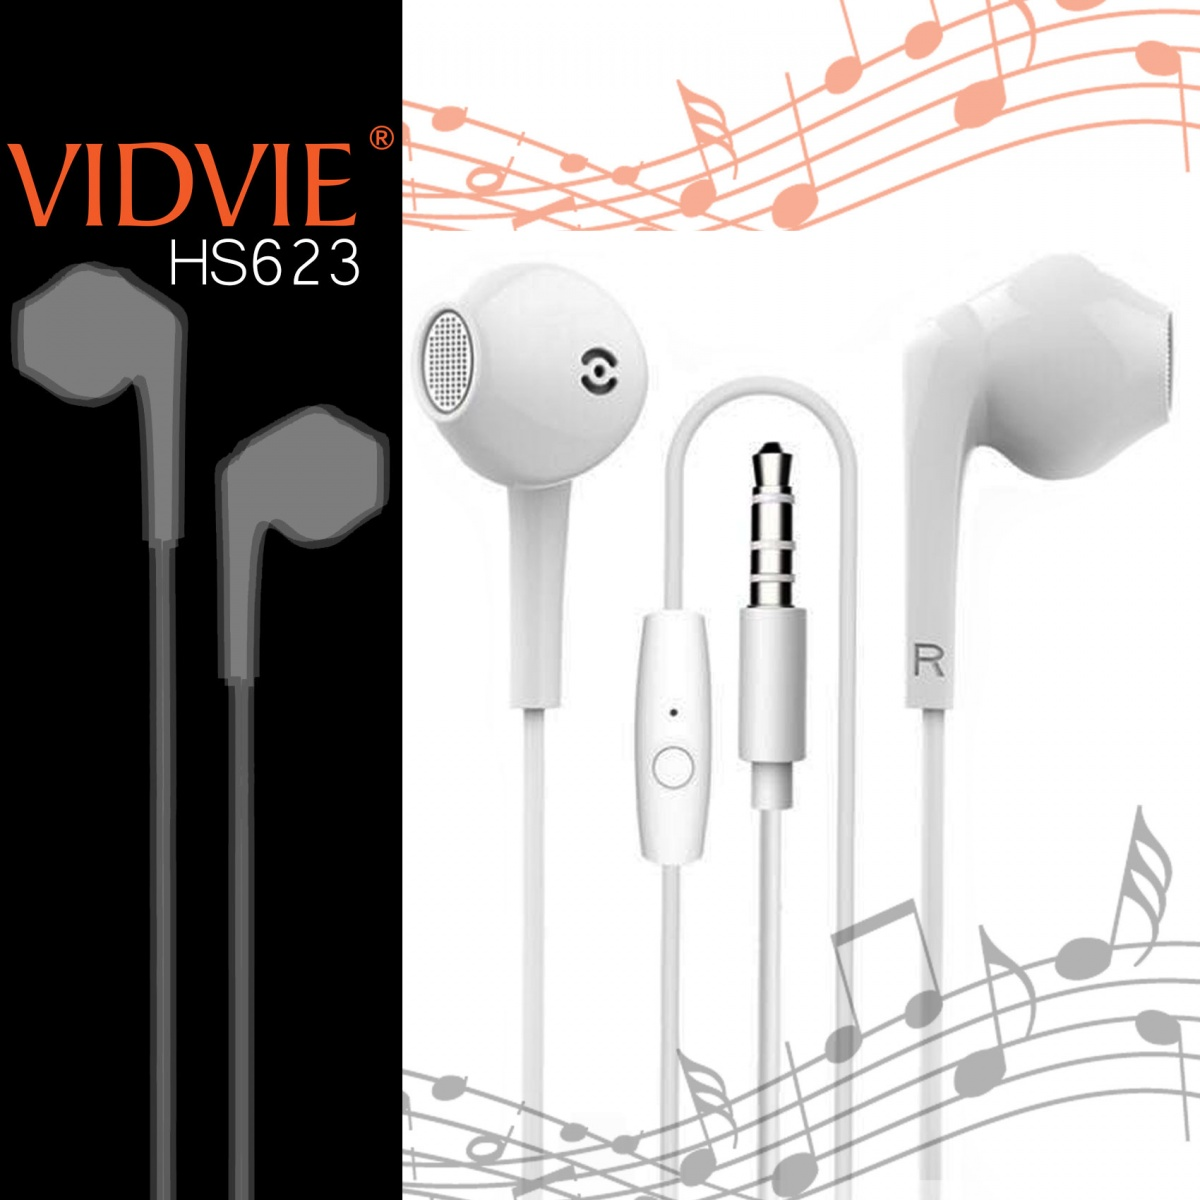 Vidvie HS623 Wired Headset - White